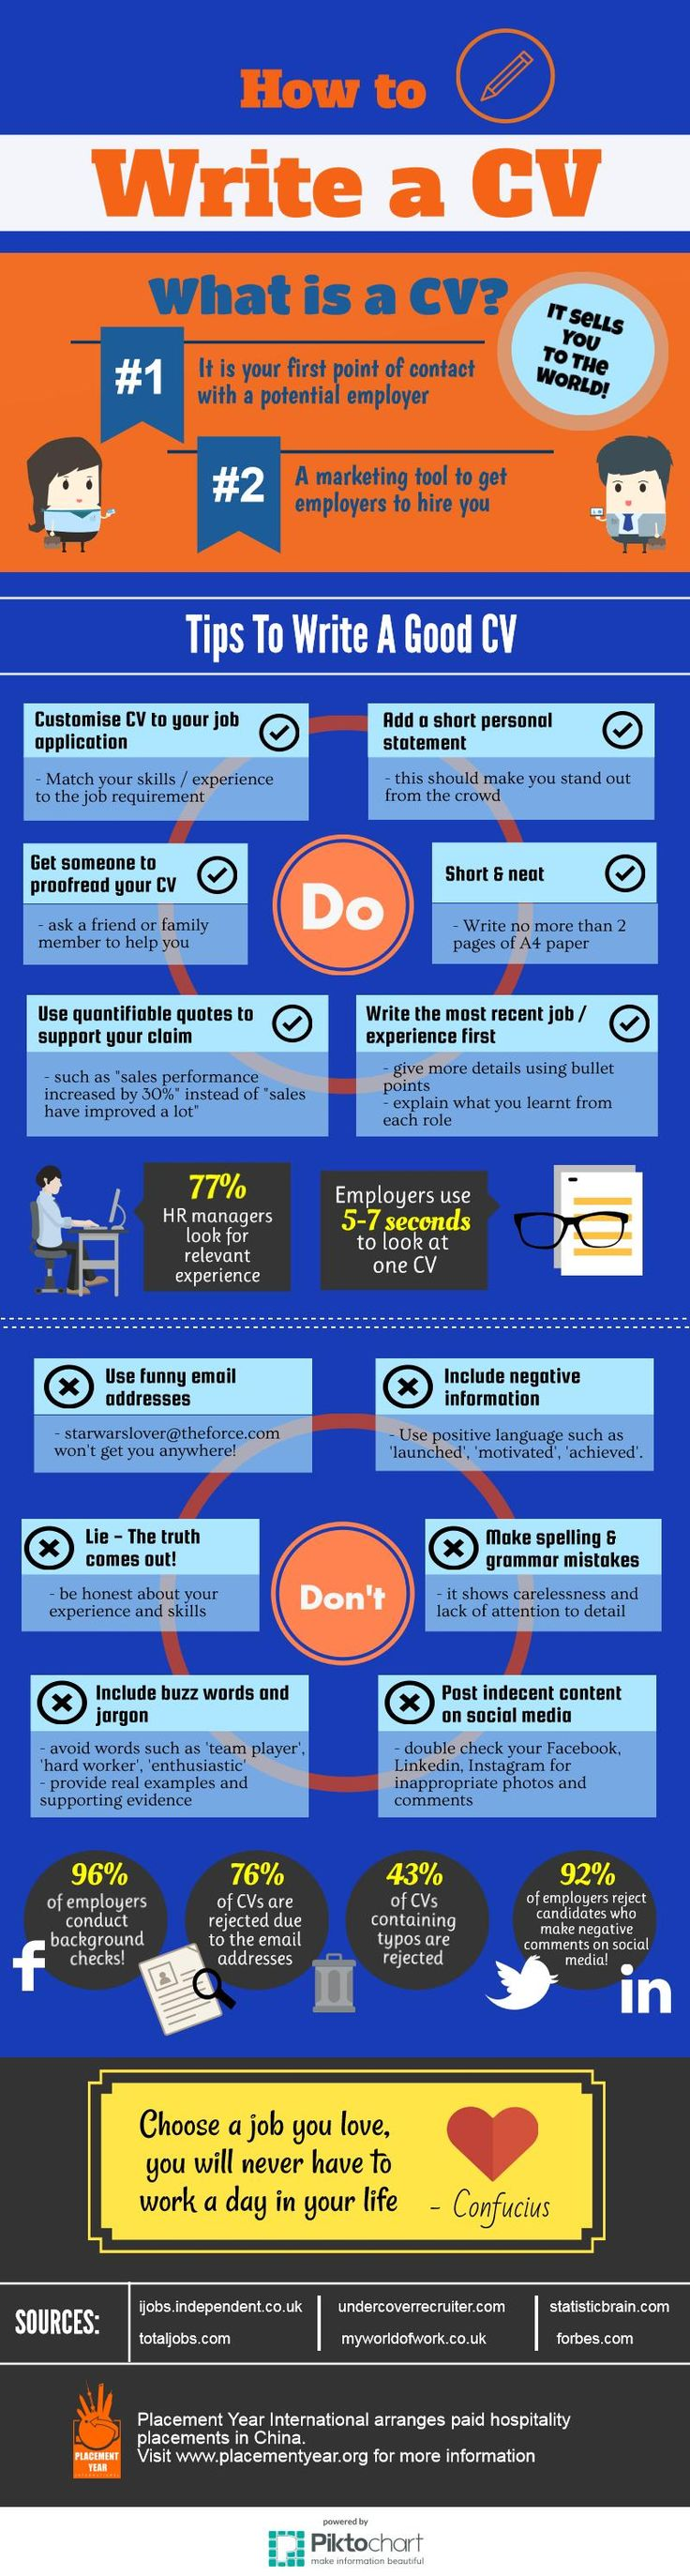 how to write a cv infographic